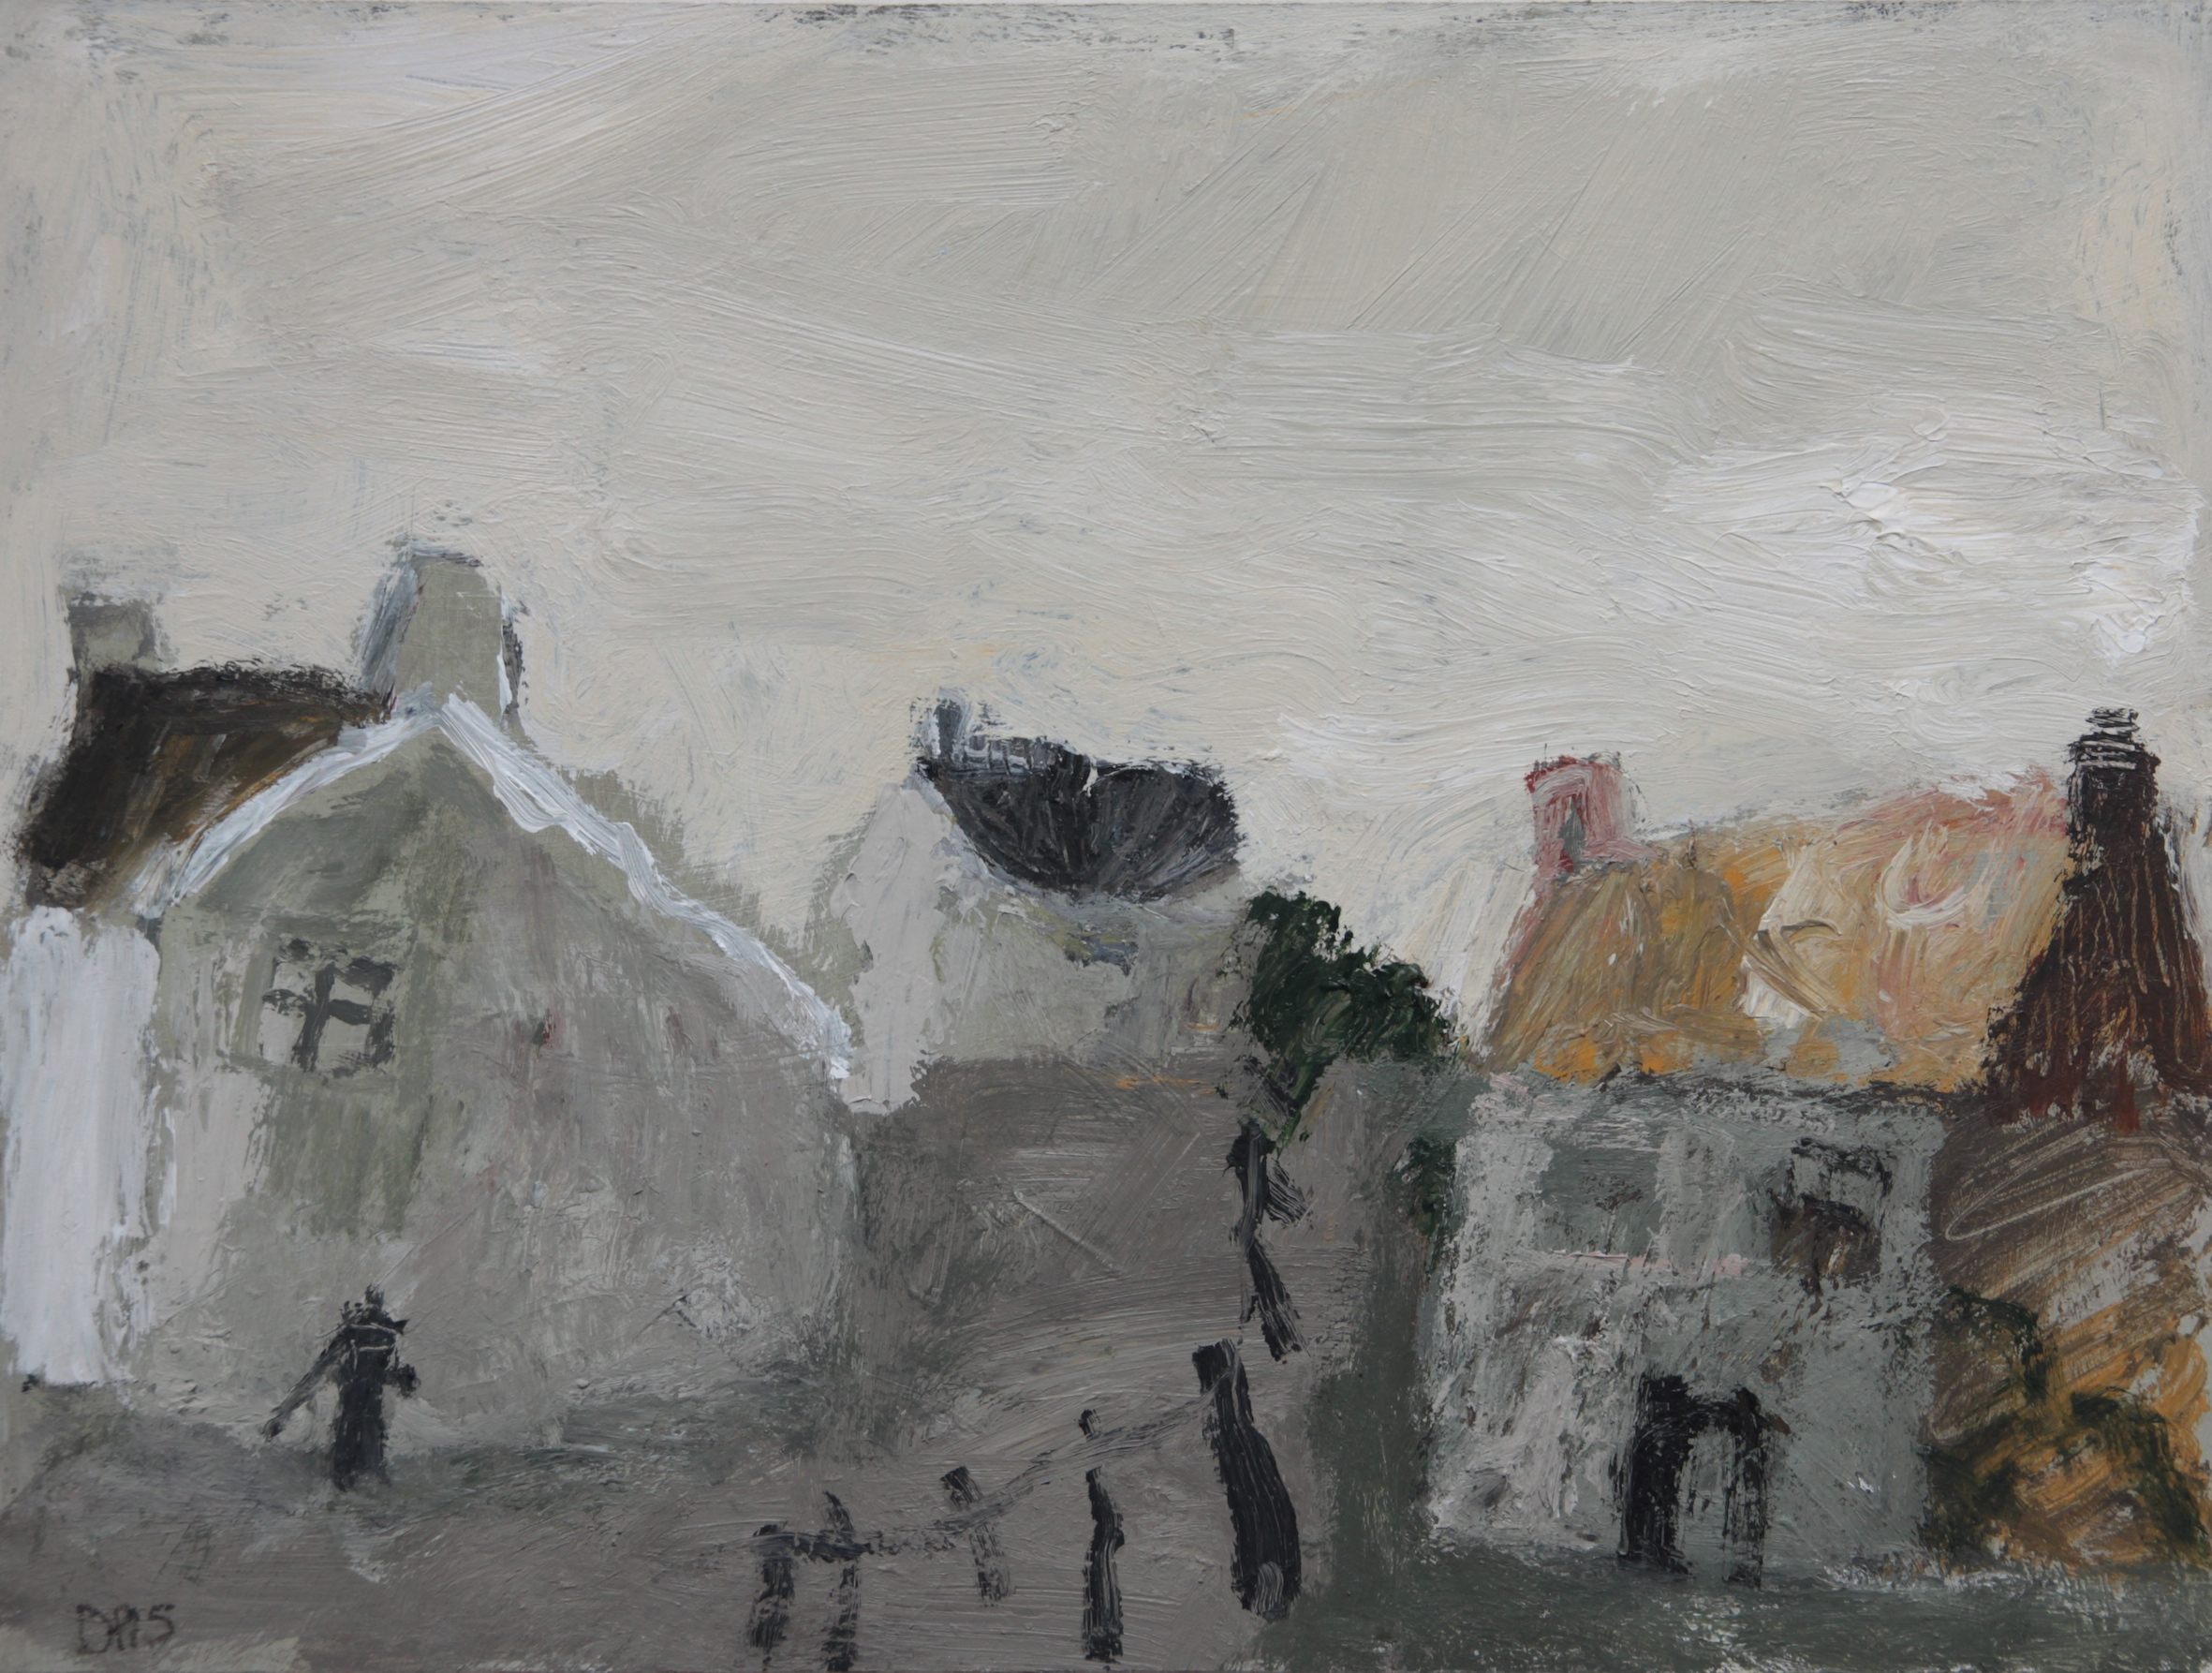 David Pearce Village Pump mixed medium on panel 30 x 40 cm S O L D